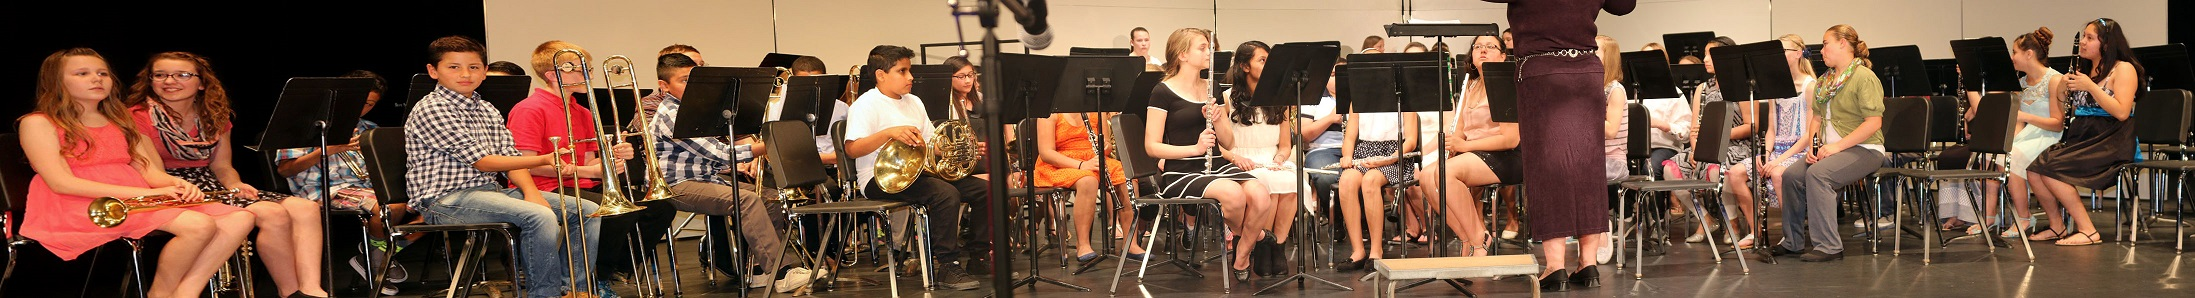 The Perry Middle School sixth grade band played four numbers during the spring concert at the Perry Performing Arts Center Thursday.